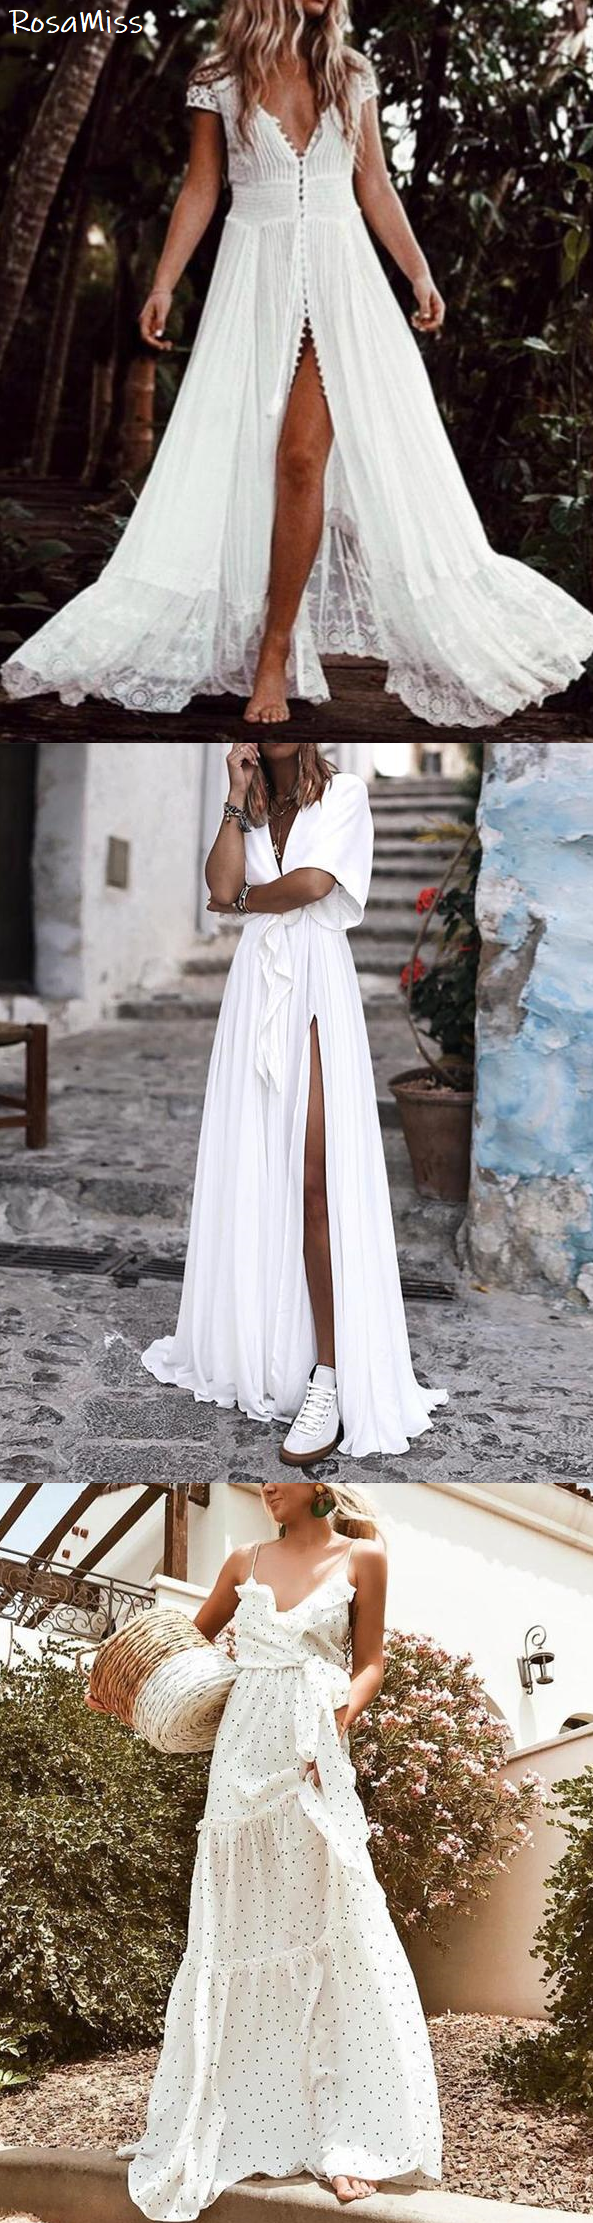 SHOP NOW>>Up To 18 OFF Summer Comfy White Dresses for Your Choice ...